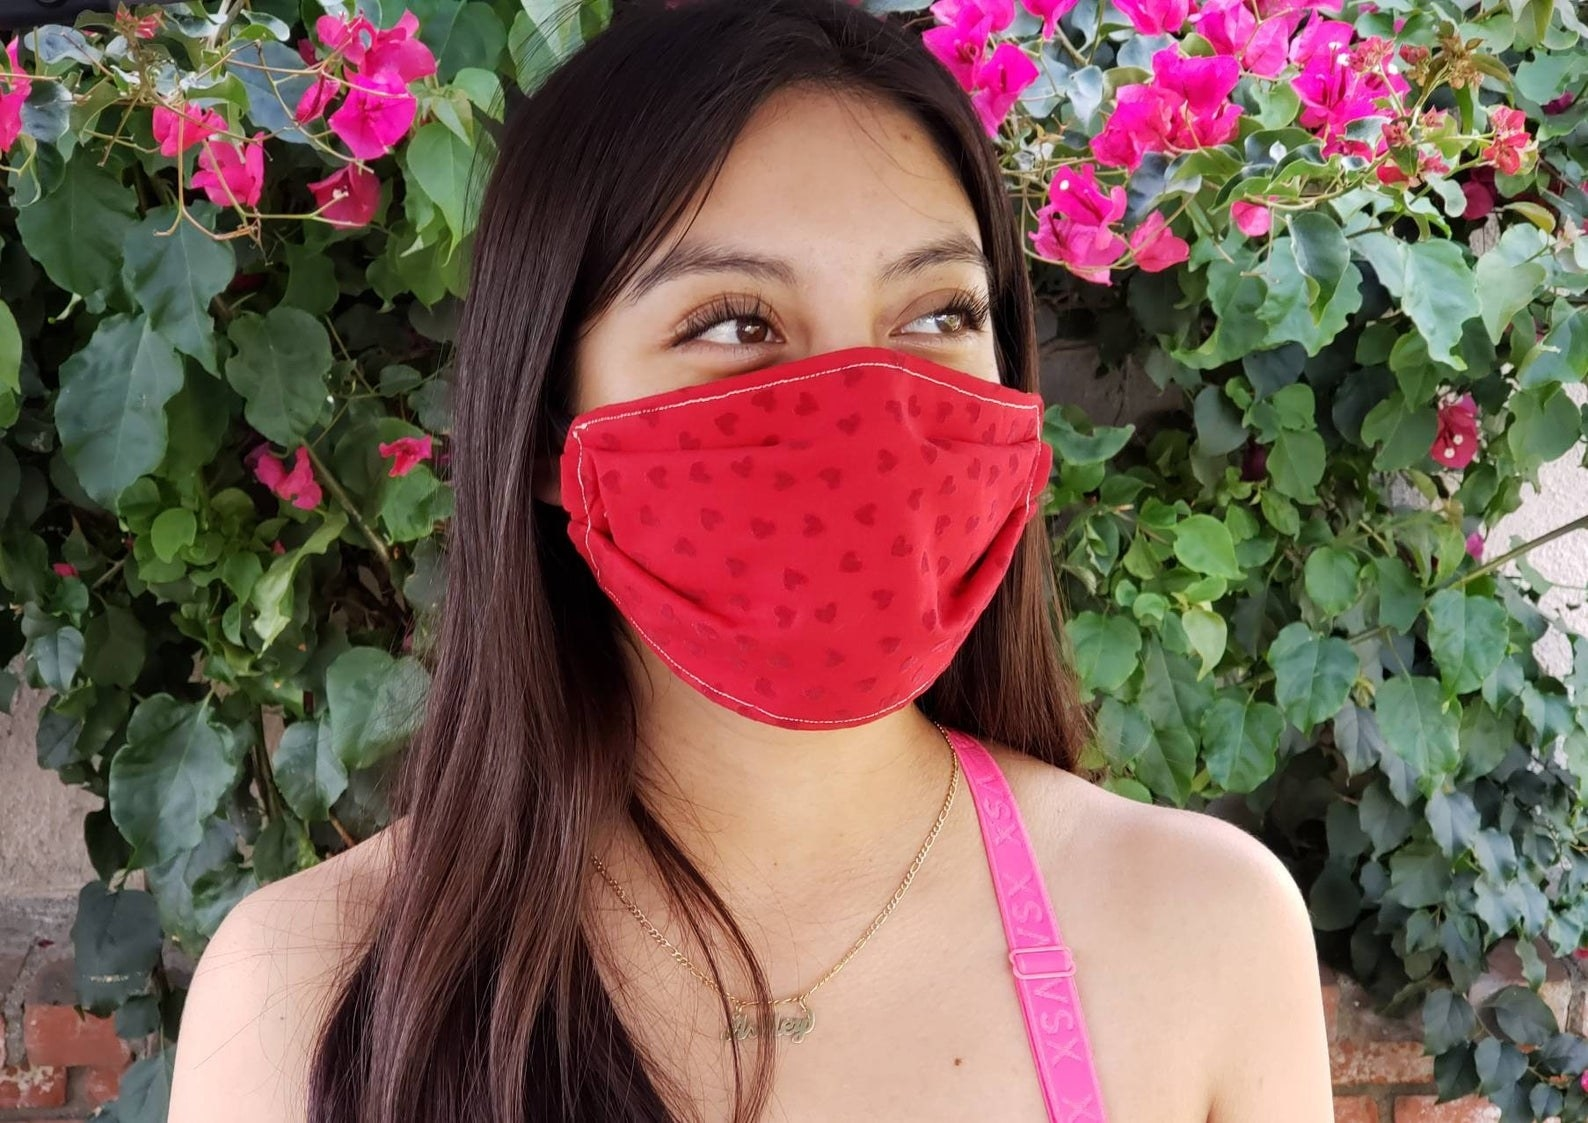 A model in a red heart-printed face mask